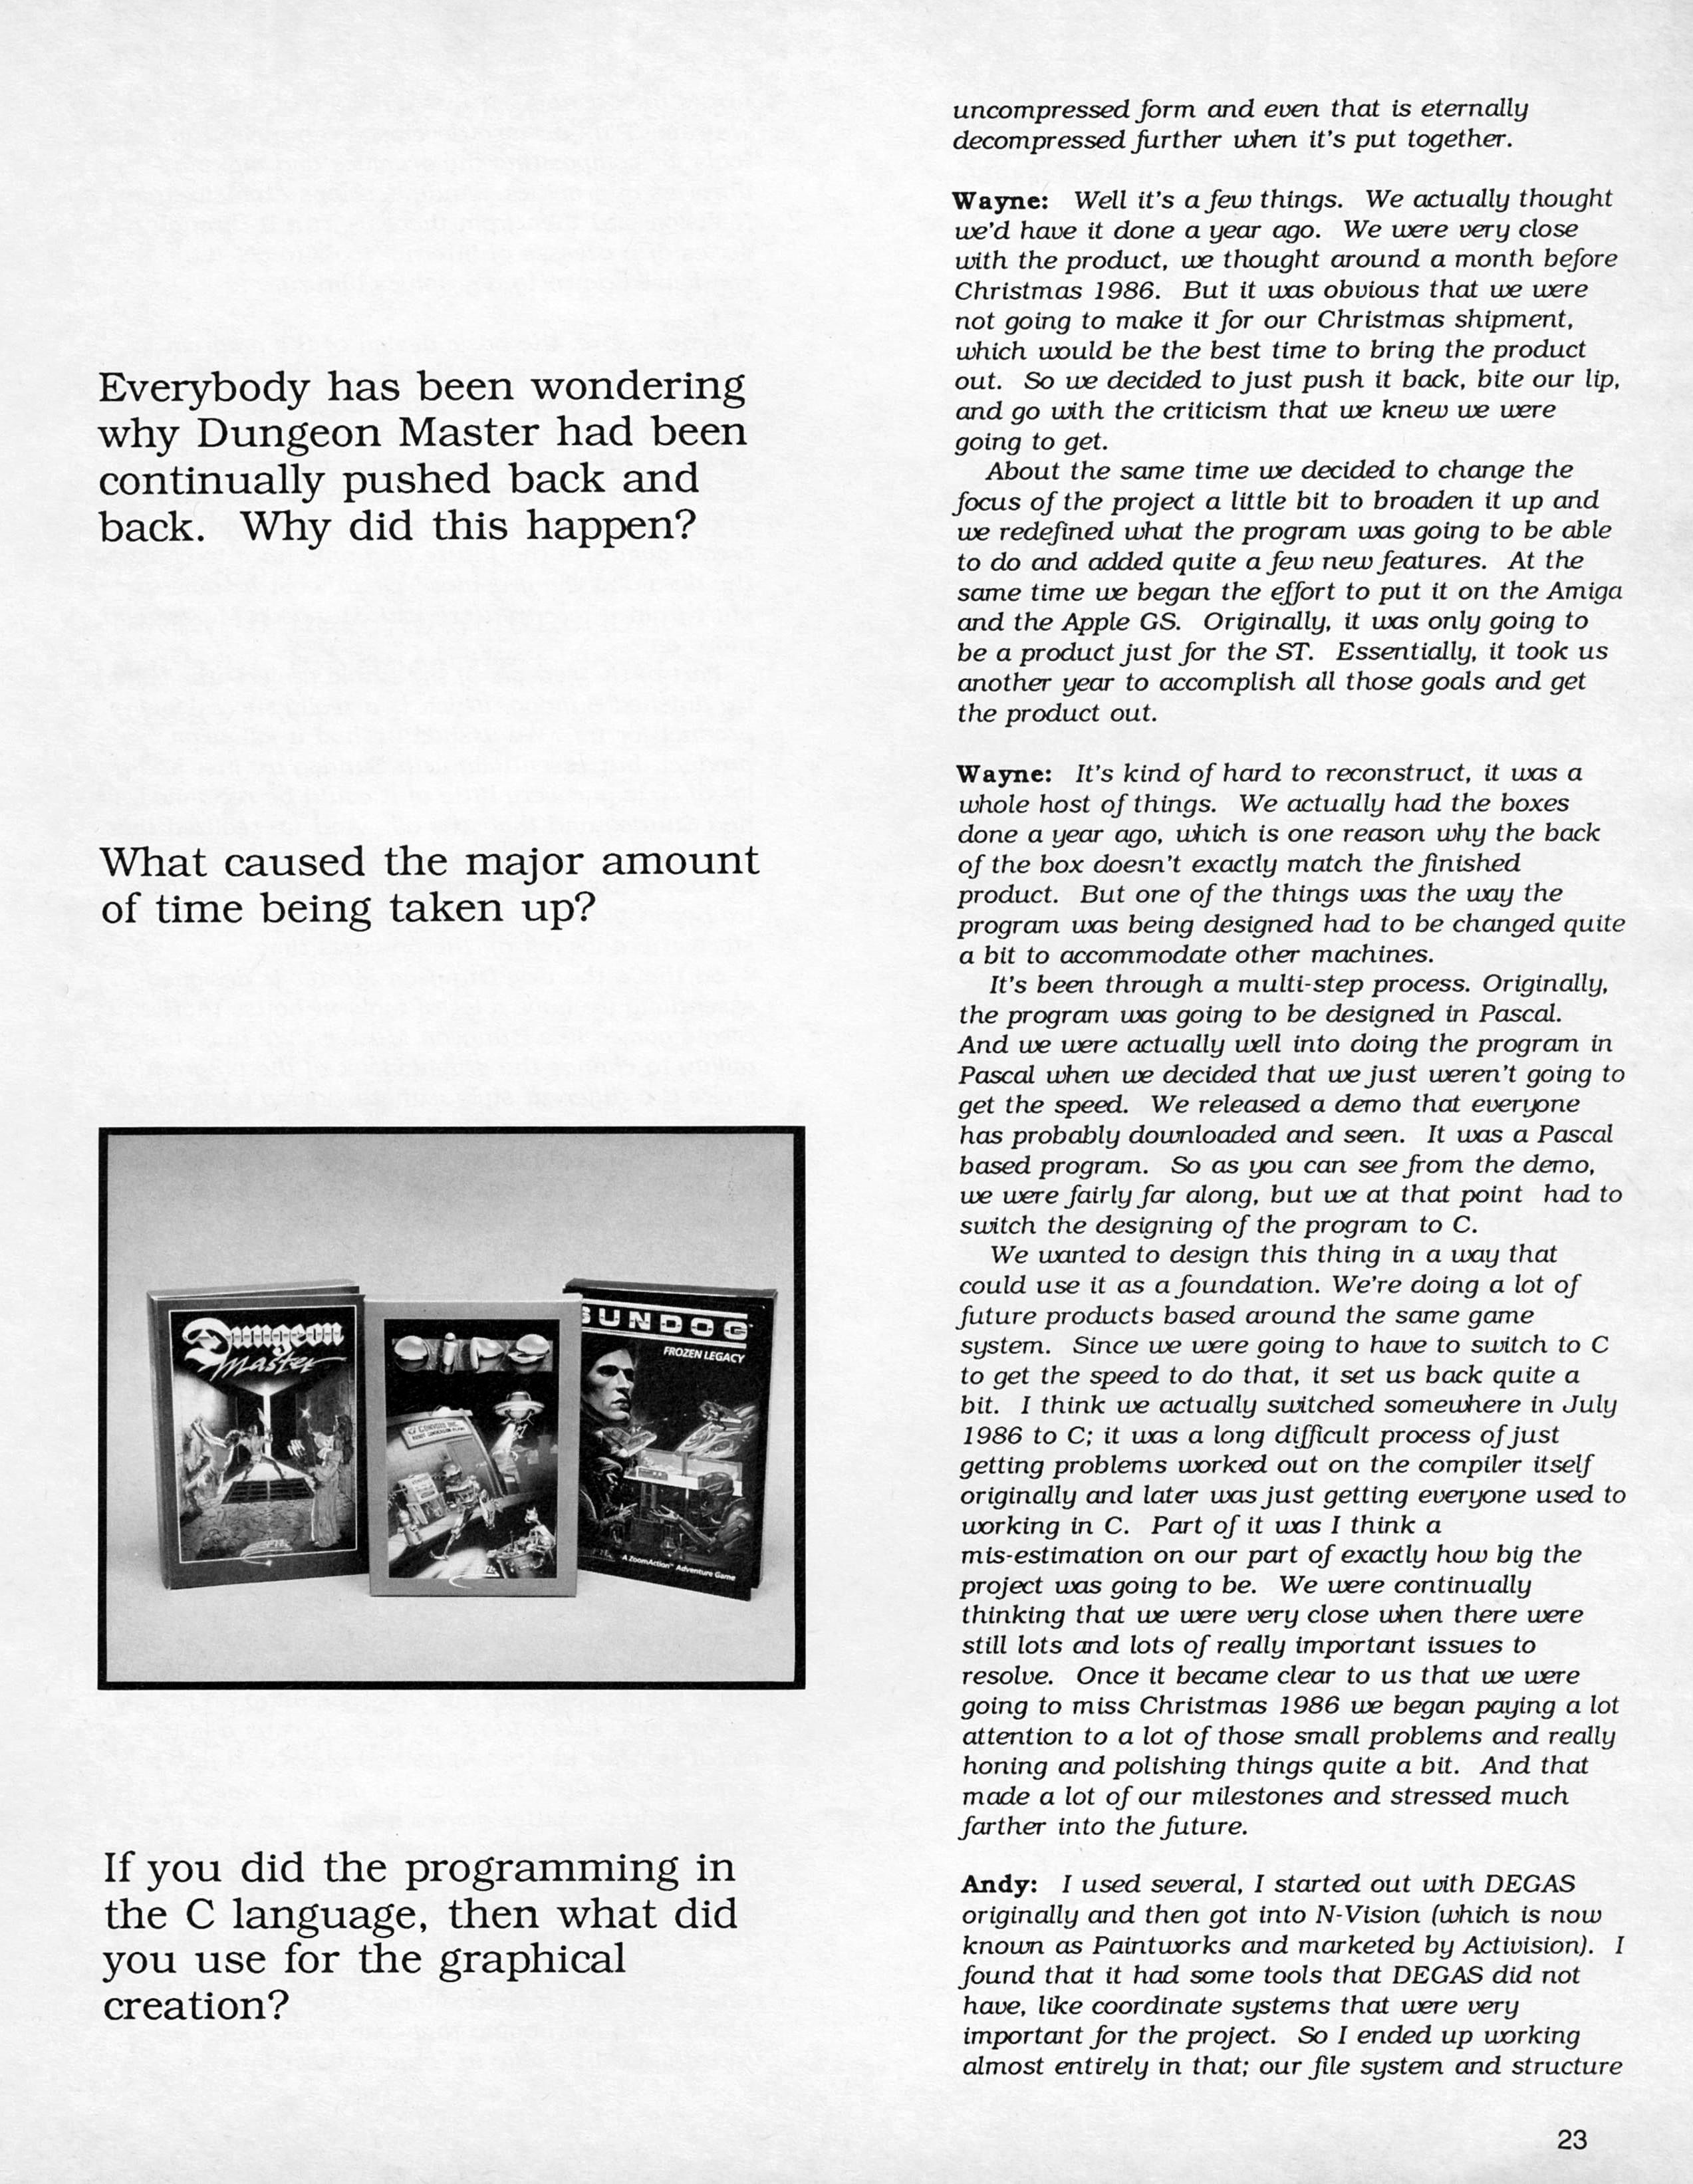 FTL Interview published in American magazine 'ST X-PRESS', Vol 2 No 2 March 1988, Page 23